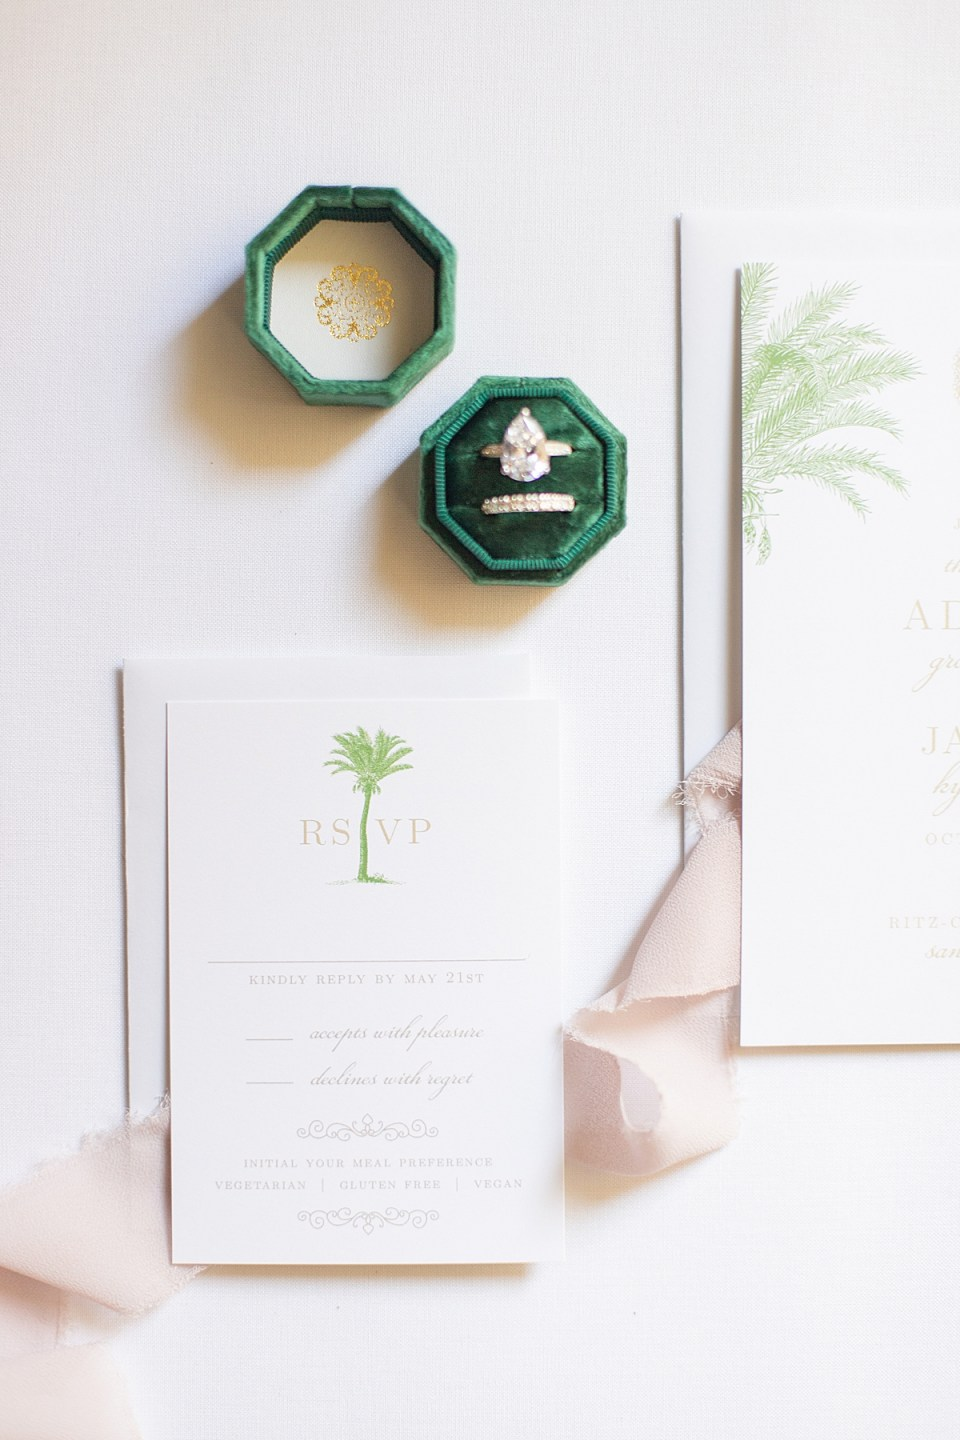 The couple's bridal shower brunch invitations with blush lace.